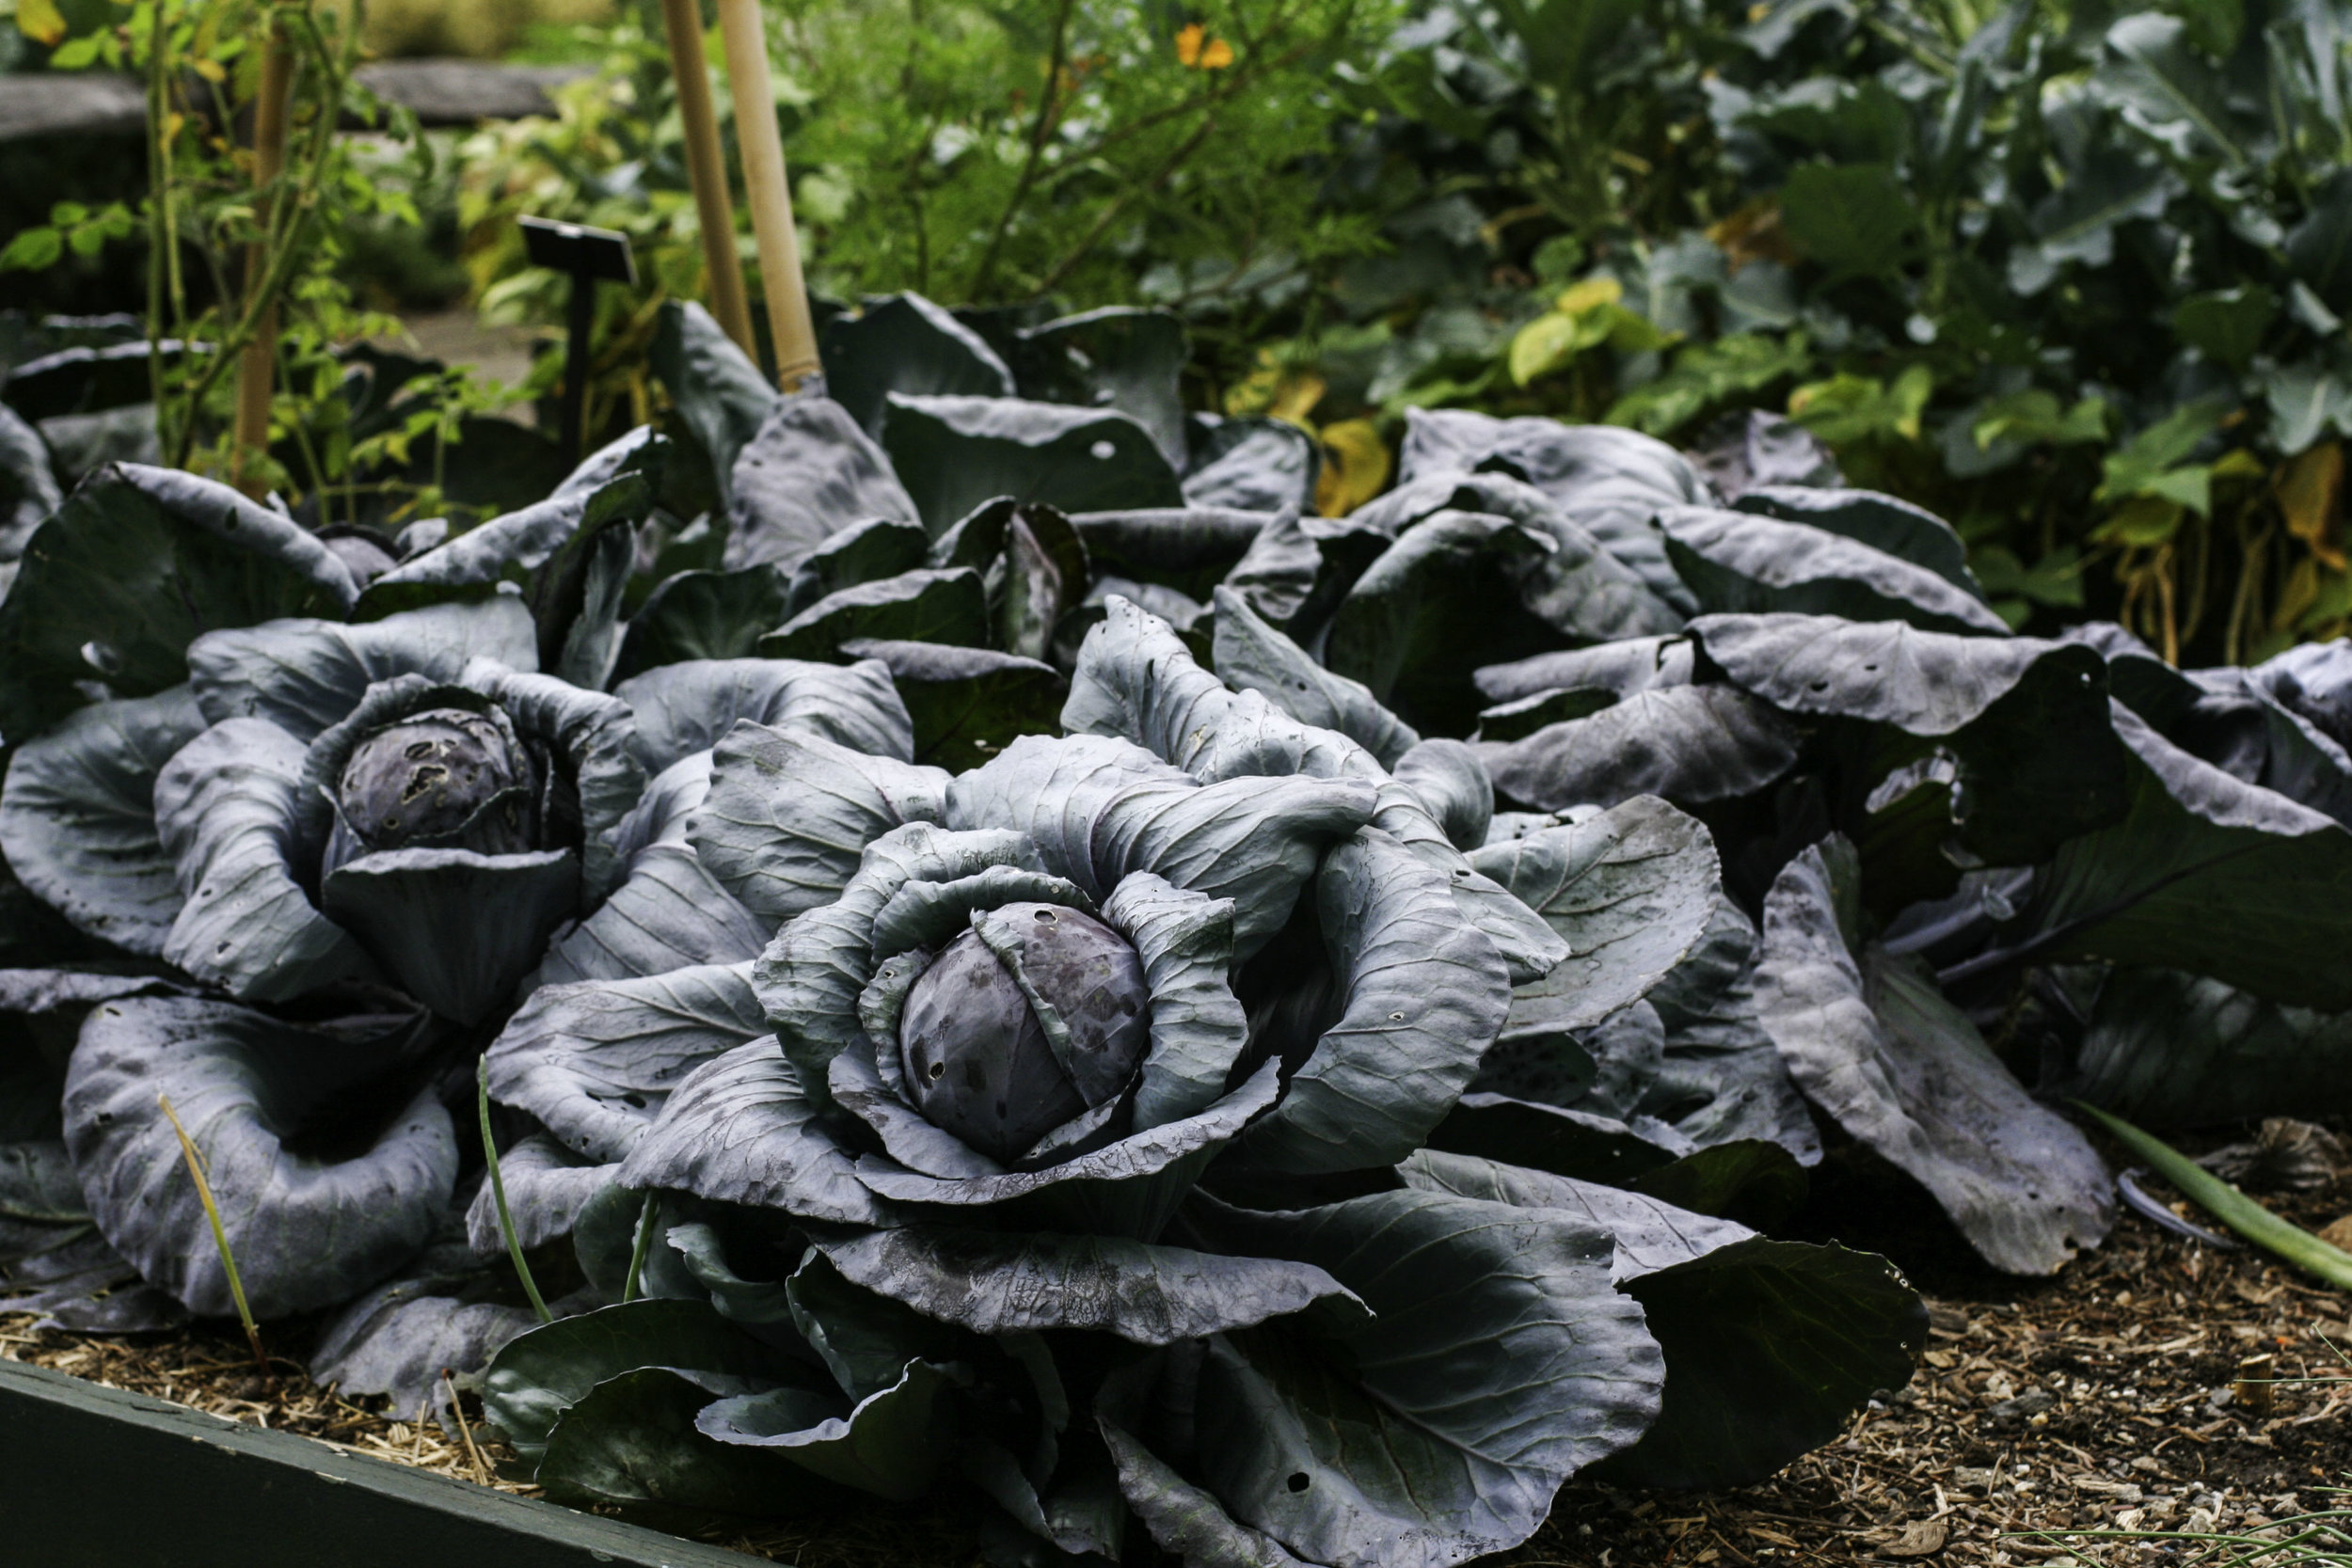 I'm growing some cabbage this year, can you imagine if it ended up looking like this? Seriously, doesn't this look enchanted?!